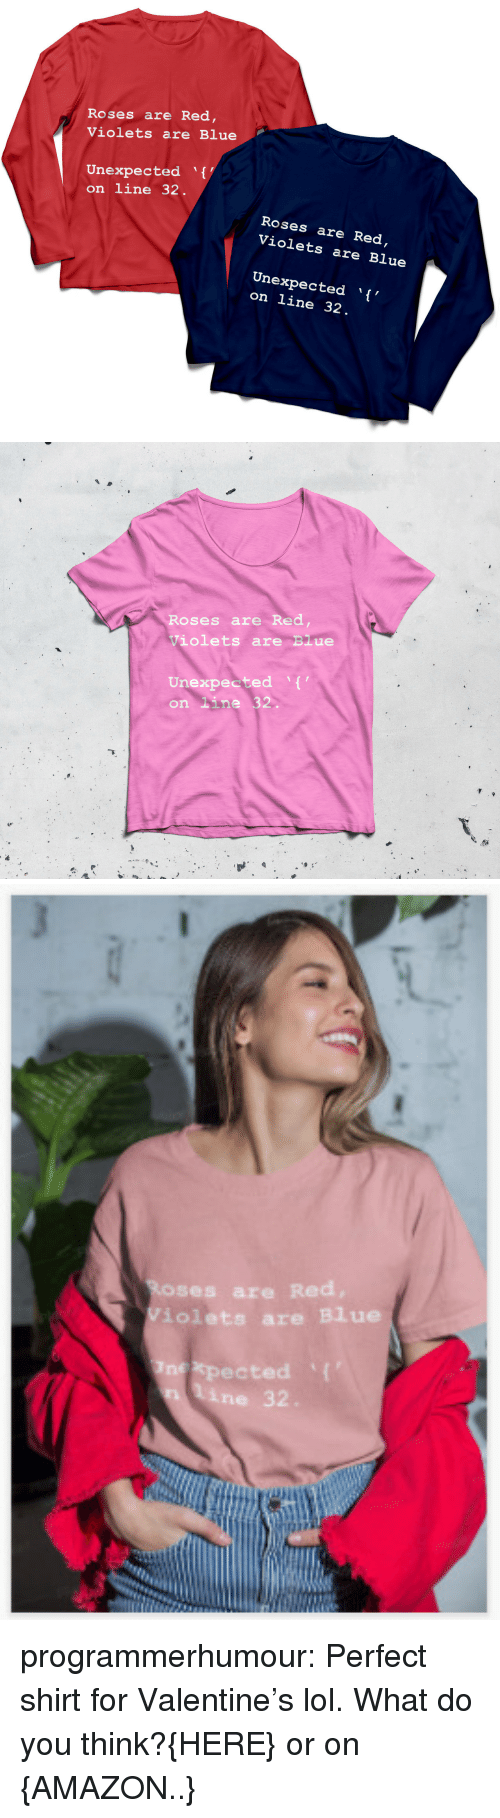 Amazon, Lol, and Tumblr: Roses are Red  Violets are Blue  Unexpected  on line 32  Roses are Red  Violets are Blue  Unexpected ,  on line 32   Roses are Red  Violets are Blue  Unexpected ,  on line 32.   ses ar  iolets are Blue  nexpected 'I  n line 32 programmerhumour:  Perfect shirt for Valentine's lol. What do you think?{HERE} or on {AMAZON..}